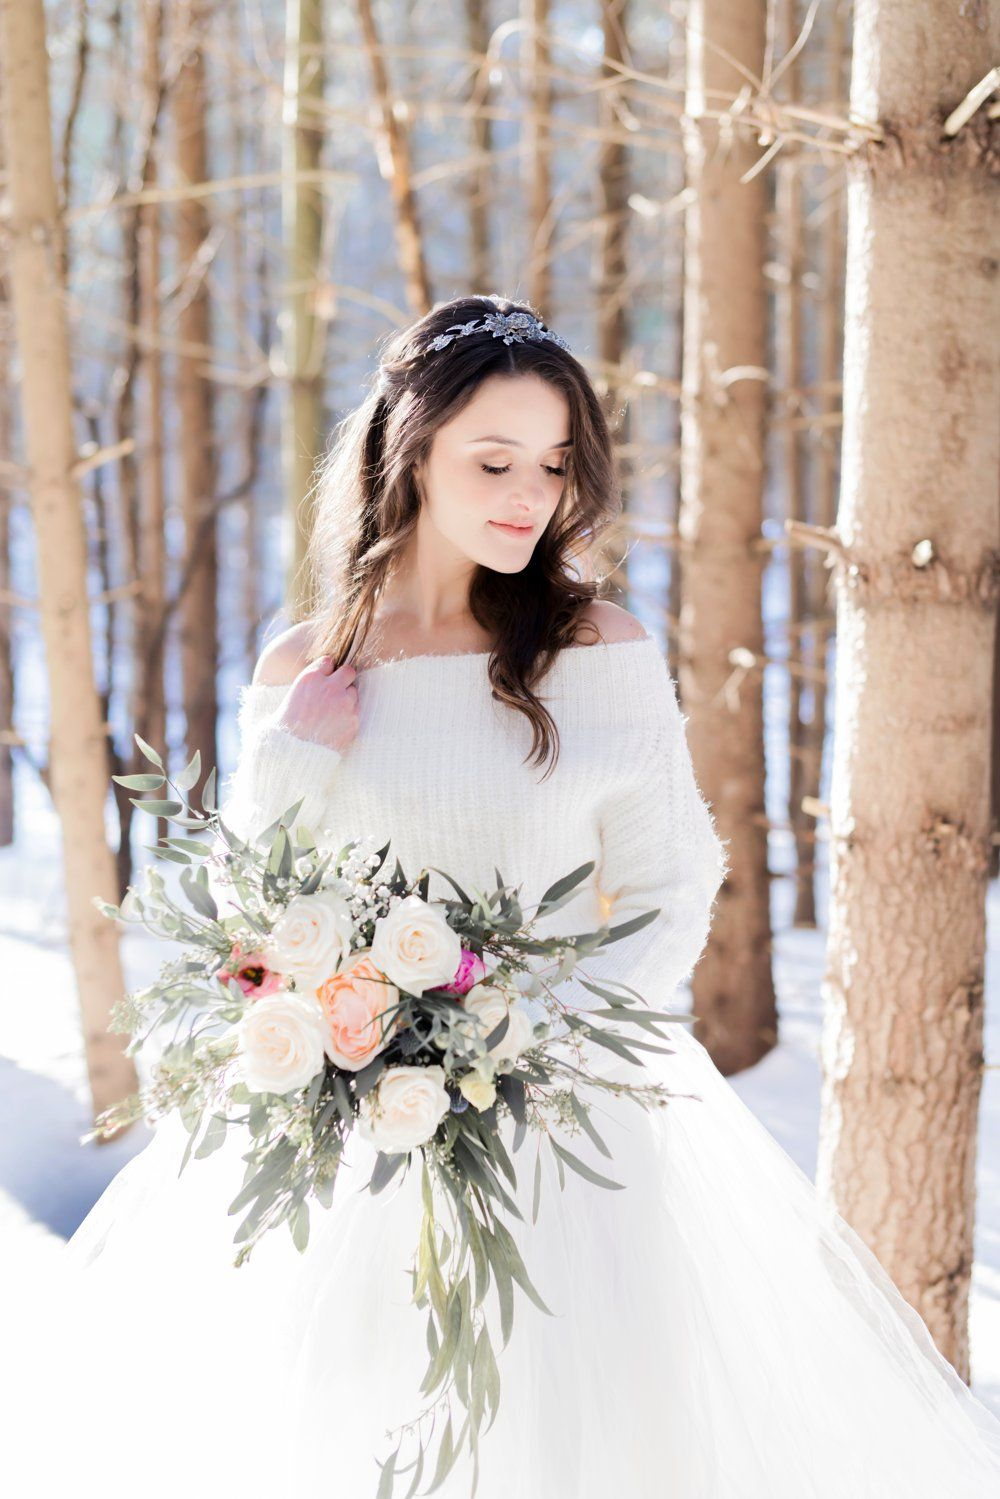 Winter Princess Wedding Inspiration In The Snow A Princess Inspired Blog Winter Christmas Wedding Dresses Fairy Tale Wedding Dress Winter Wedding Dress Lace [ 1499 x 1000 Pixel ]